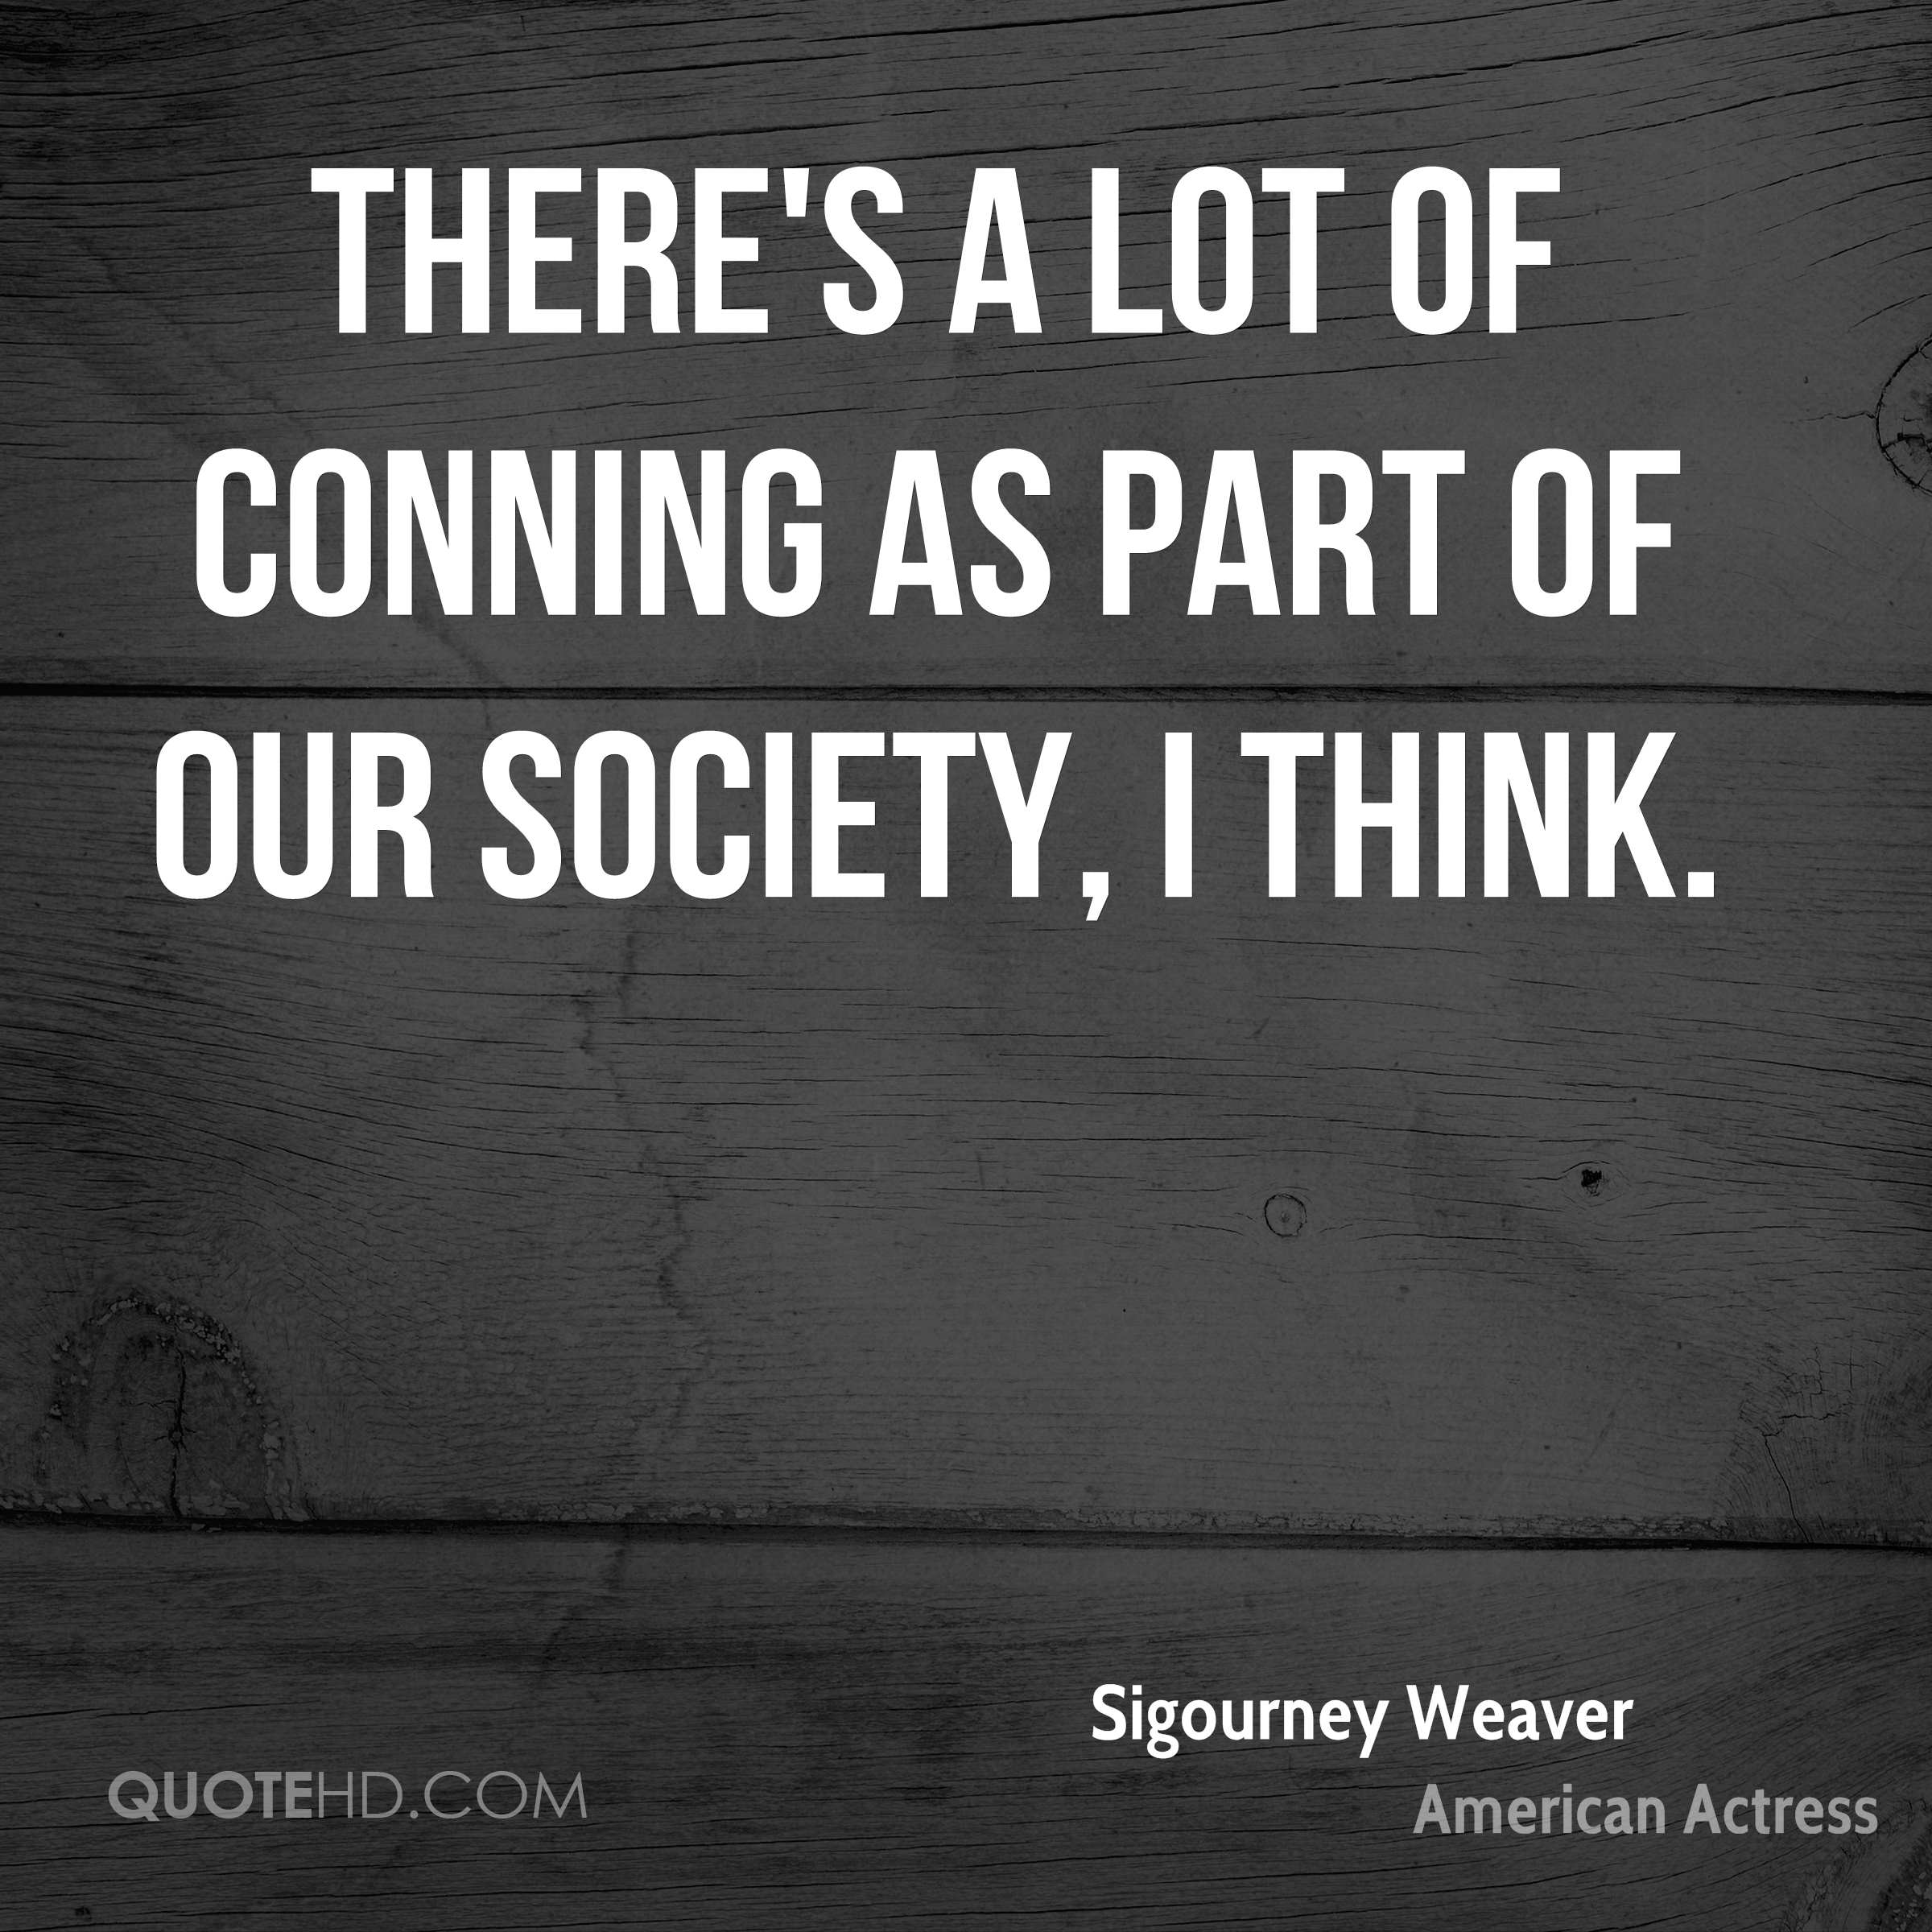 There's a lot of conning as part of our society, I think.